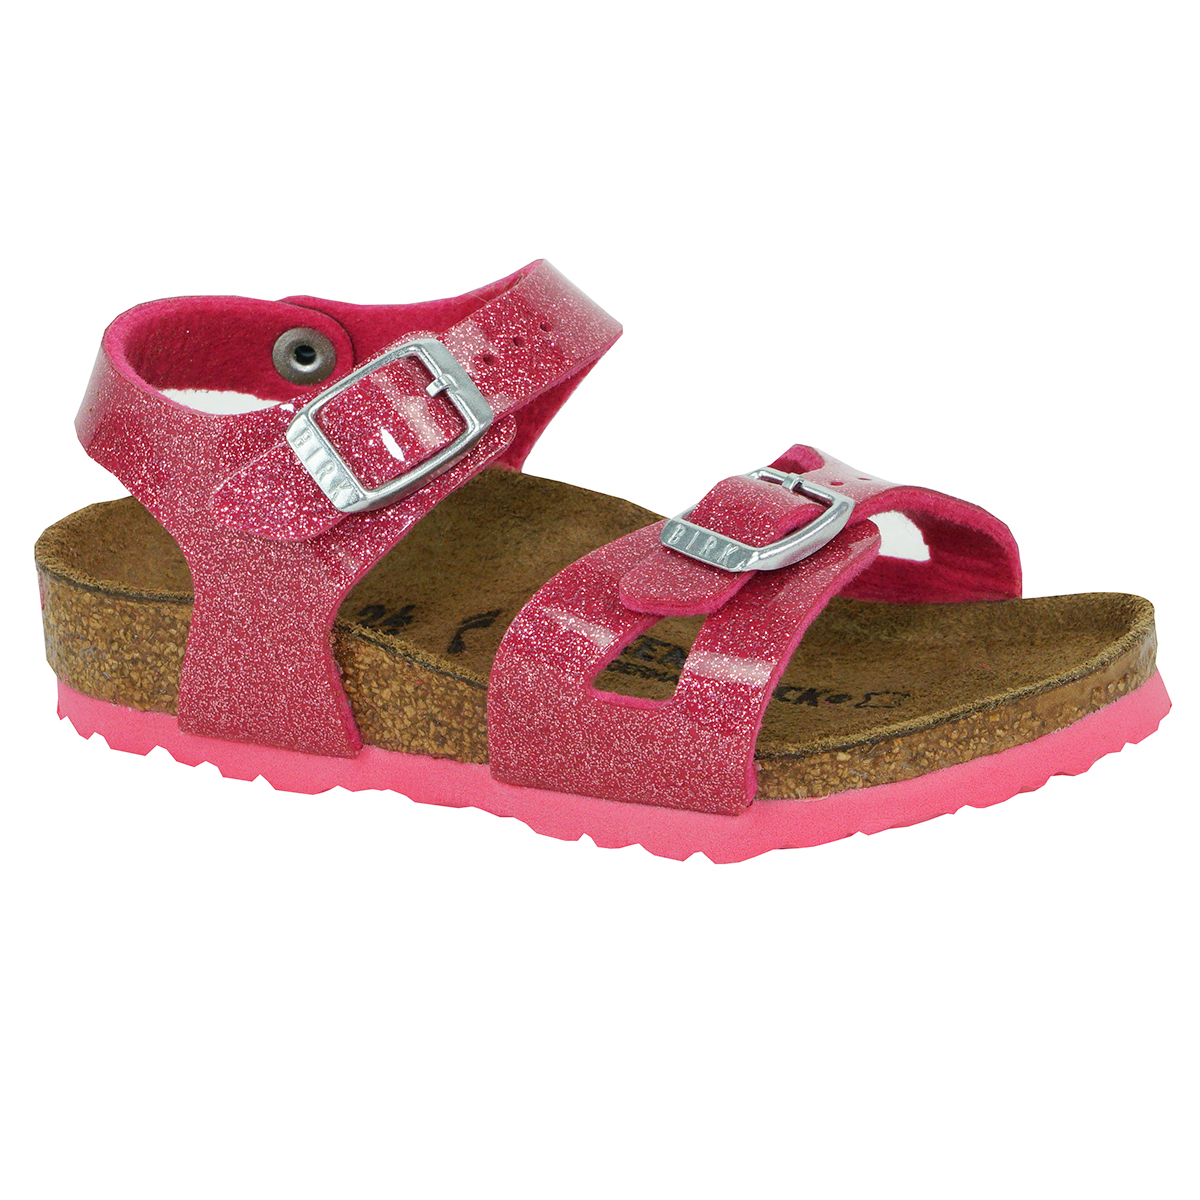 on wholesale release date cheap for discount Birkenstock Kids Rio Birko-Flor Sandals Magic Galaxy Bright Rose 24 N